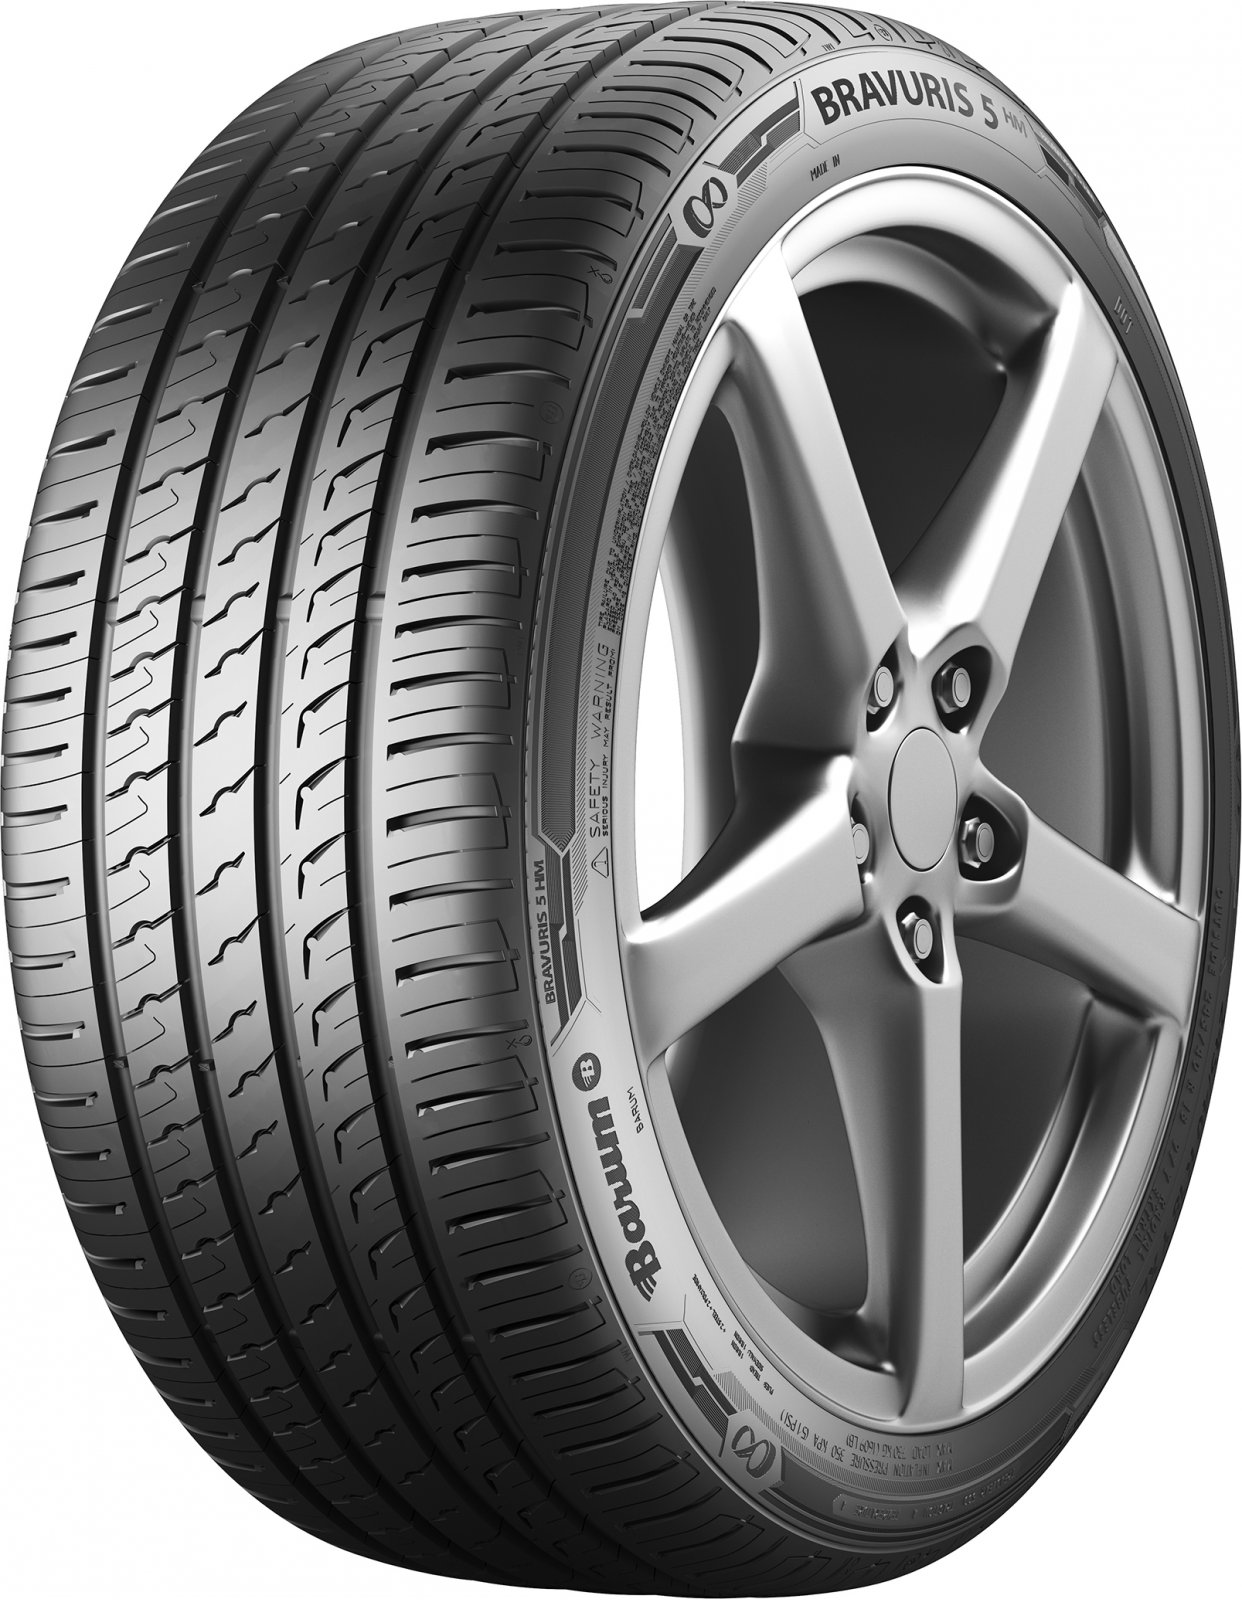 Barum Bravuris 5HM 235/45 R17 97Y XL FR